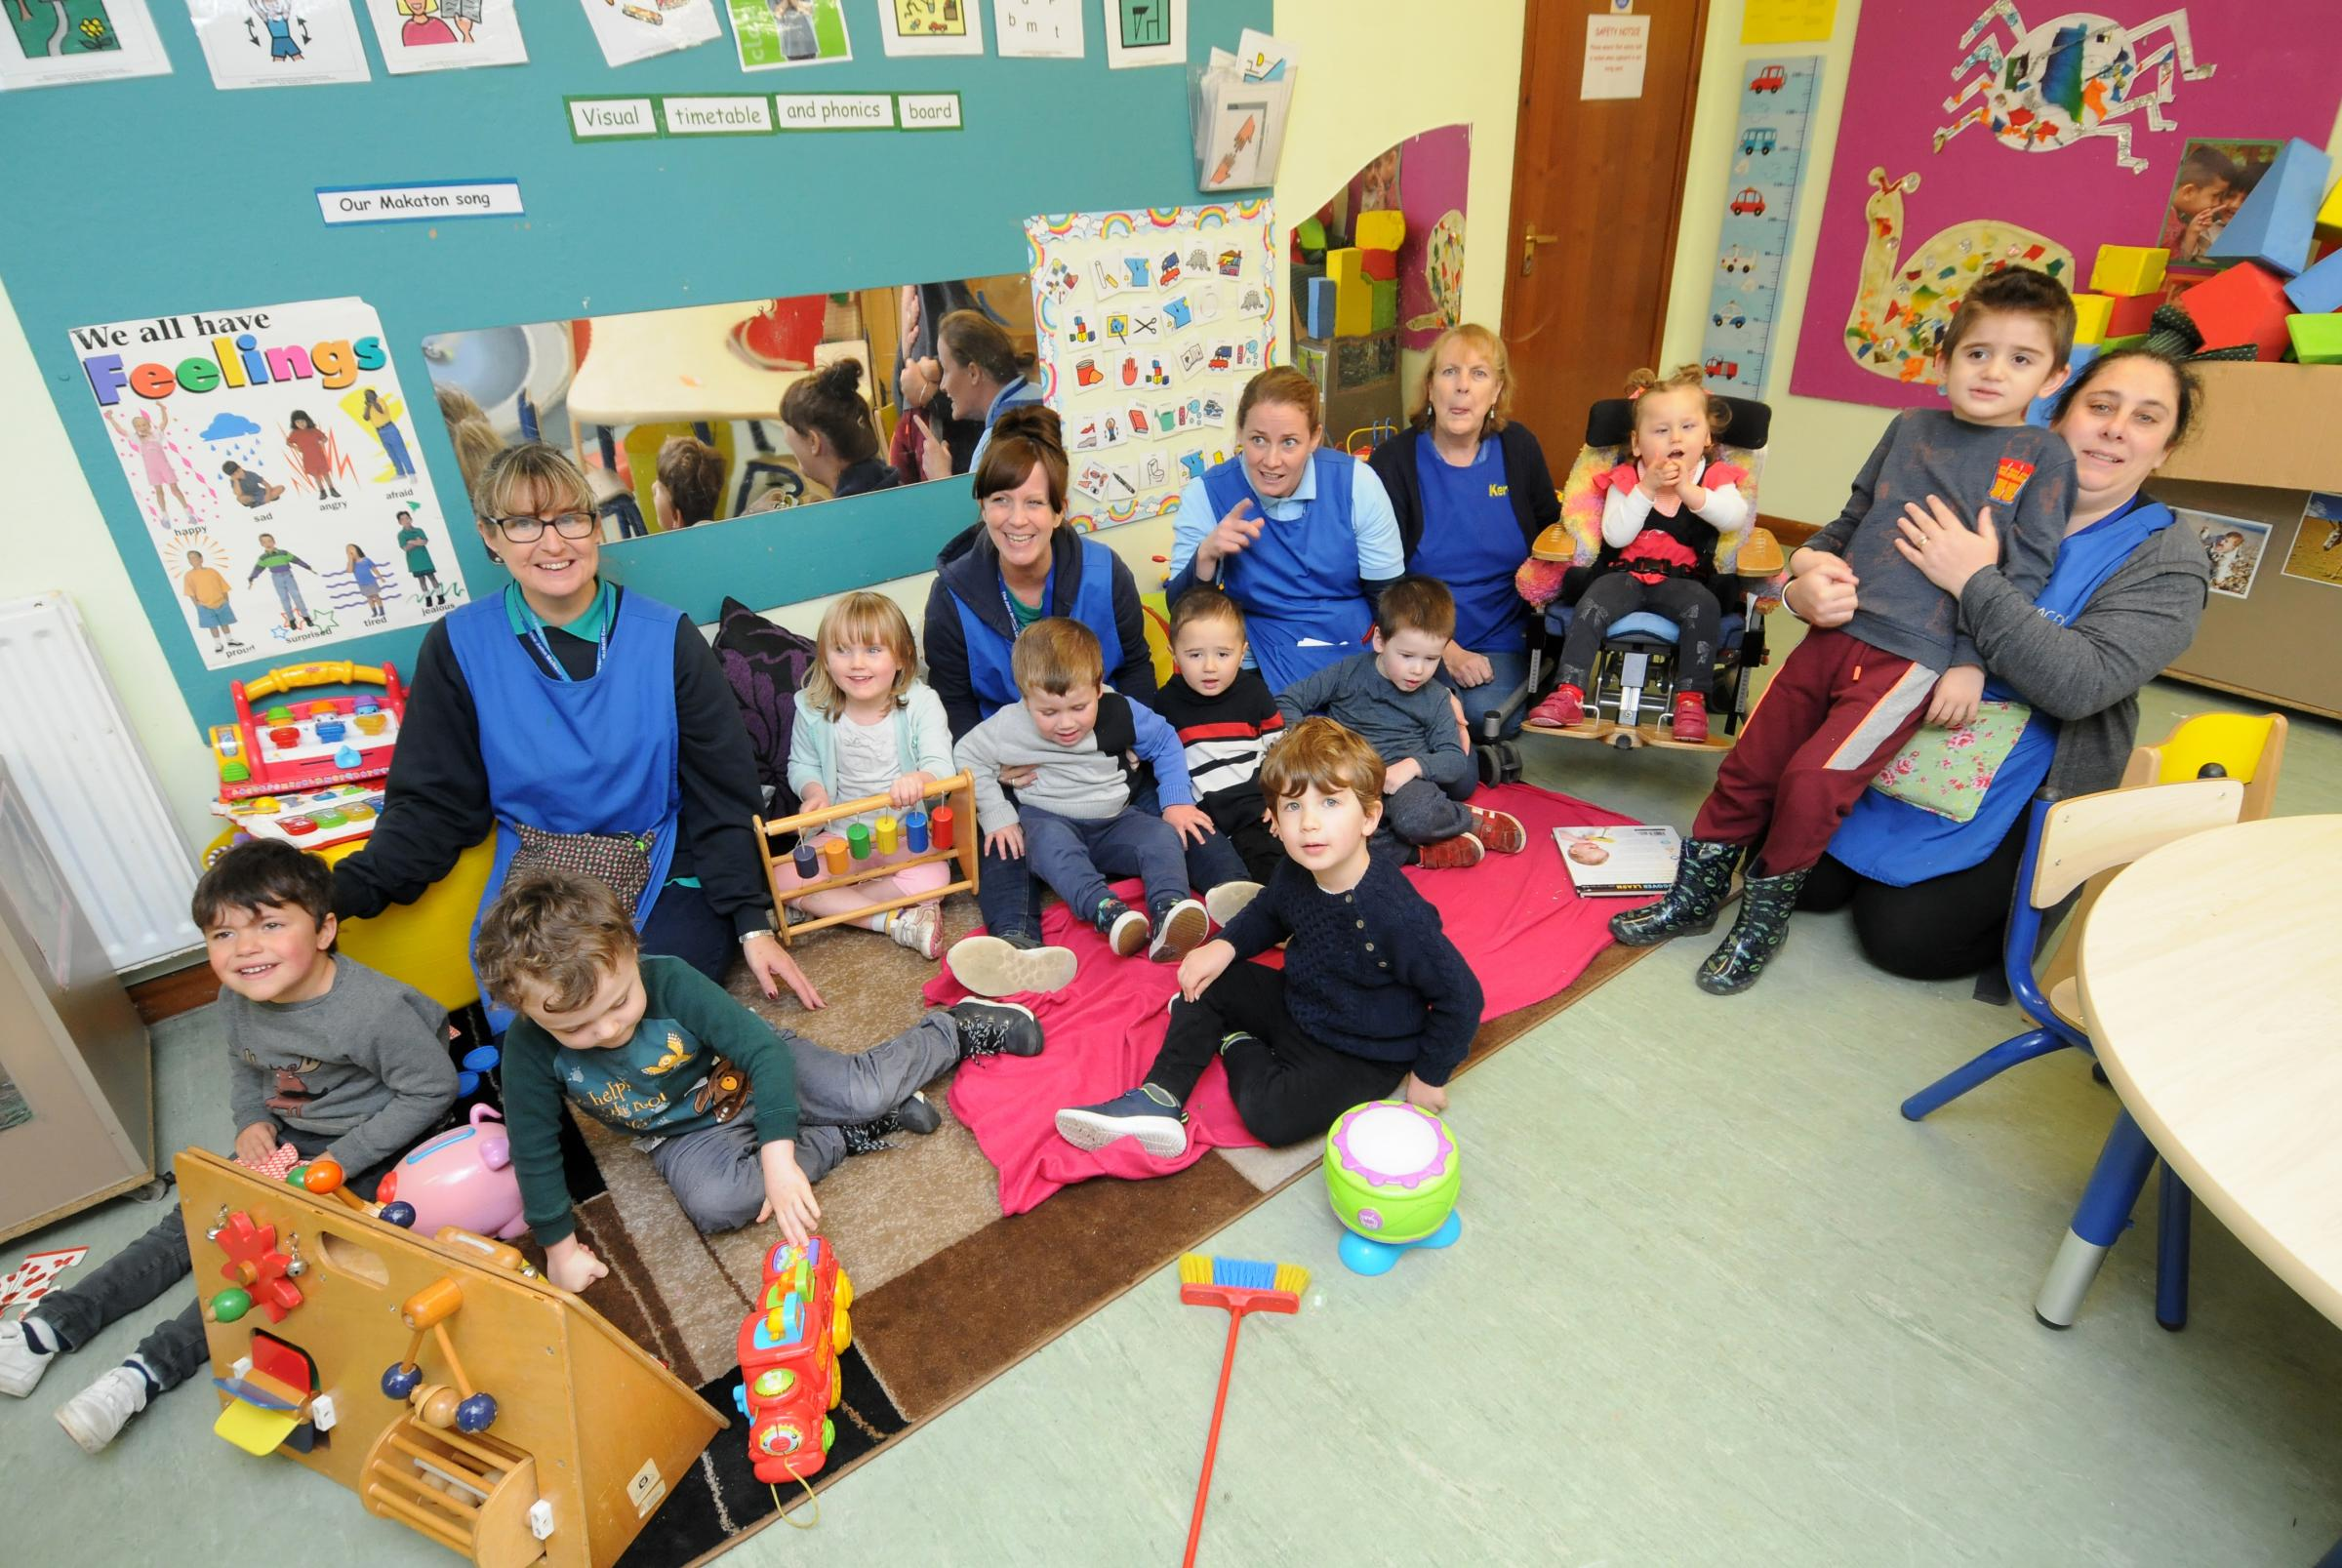 Support needed for John McNeill Opportunity Centre in Salisbury